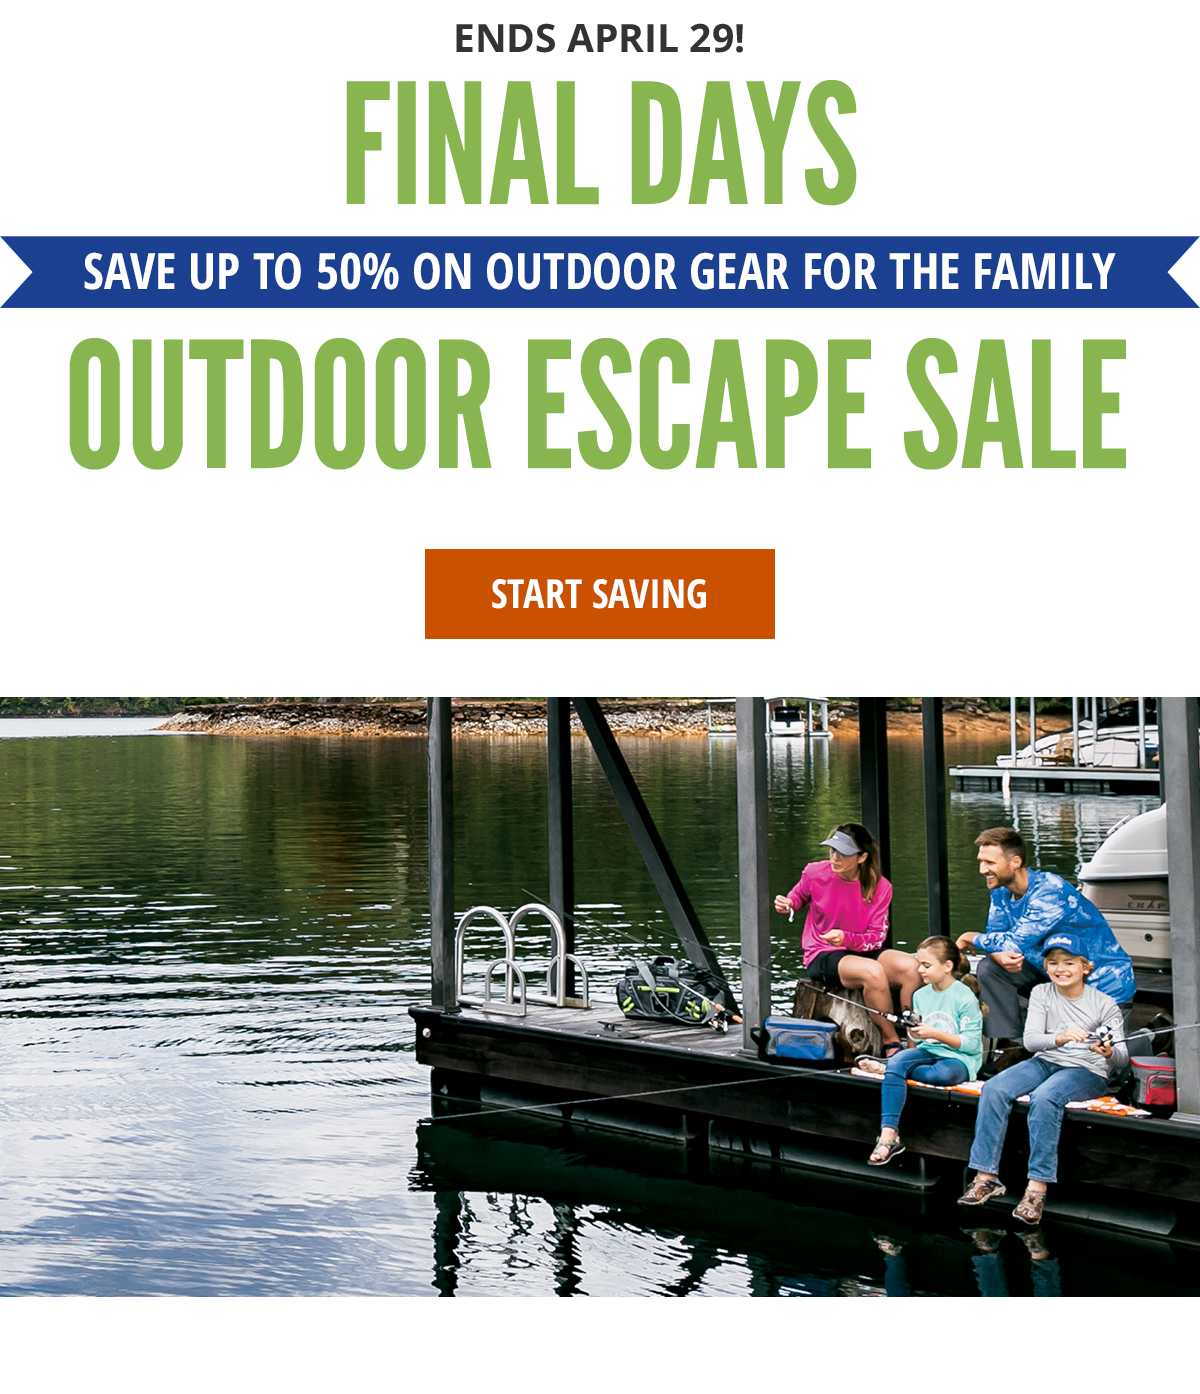 Save up to 50% - Outdoor Escape Sale